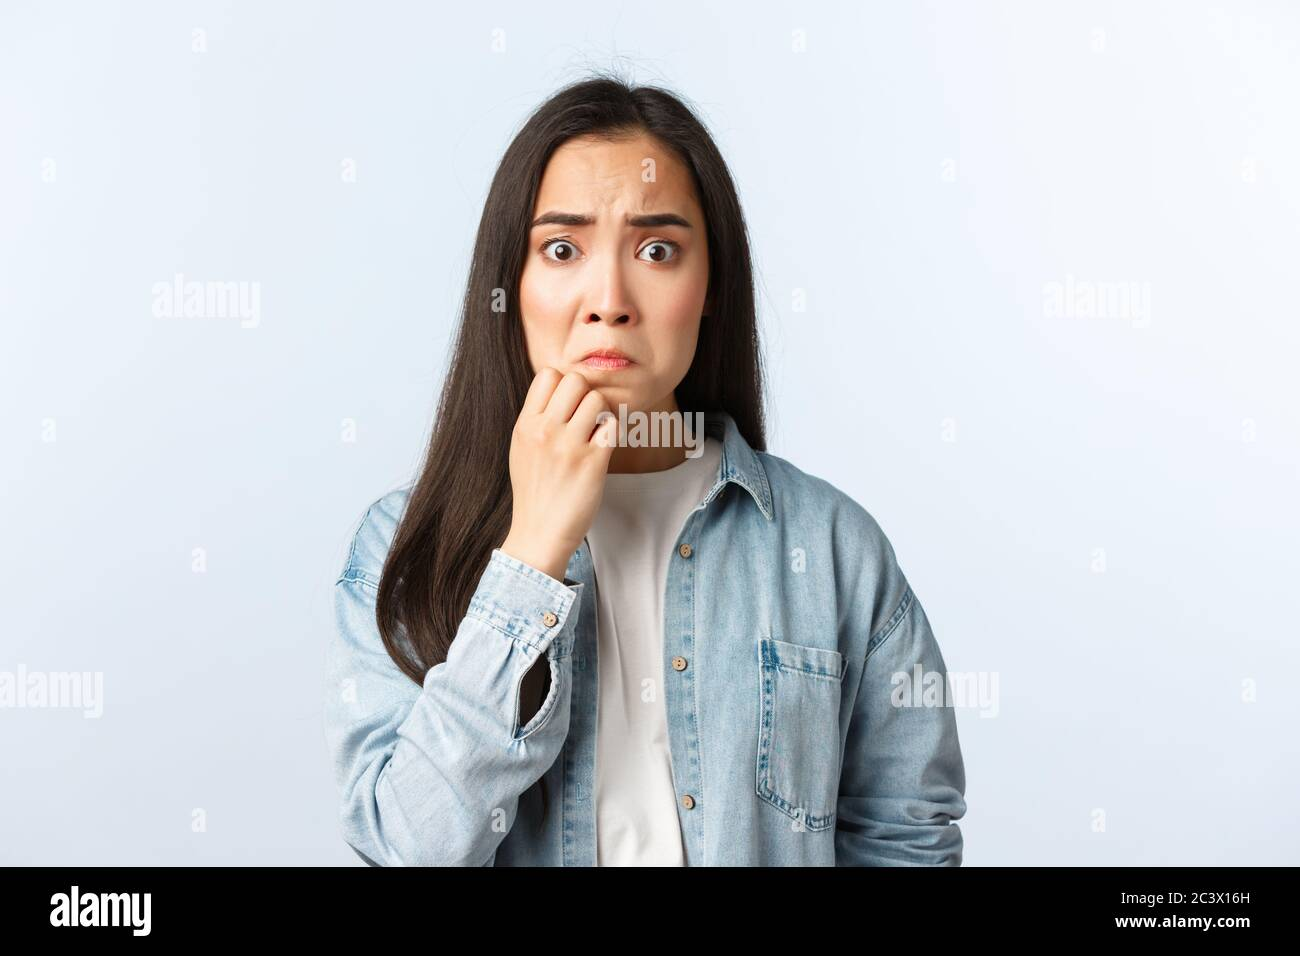 Lifestyle, people emotions and beauty concept. Anxious and concerned panicking asian girl grimacing, touching chin, look guilty or nervous, worried Stock Photo